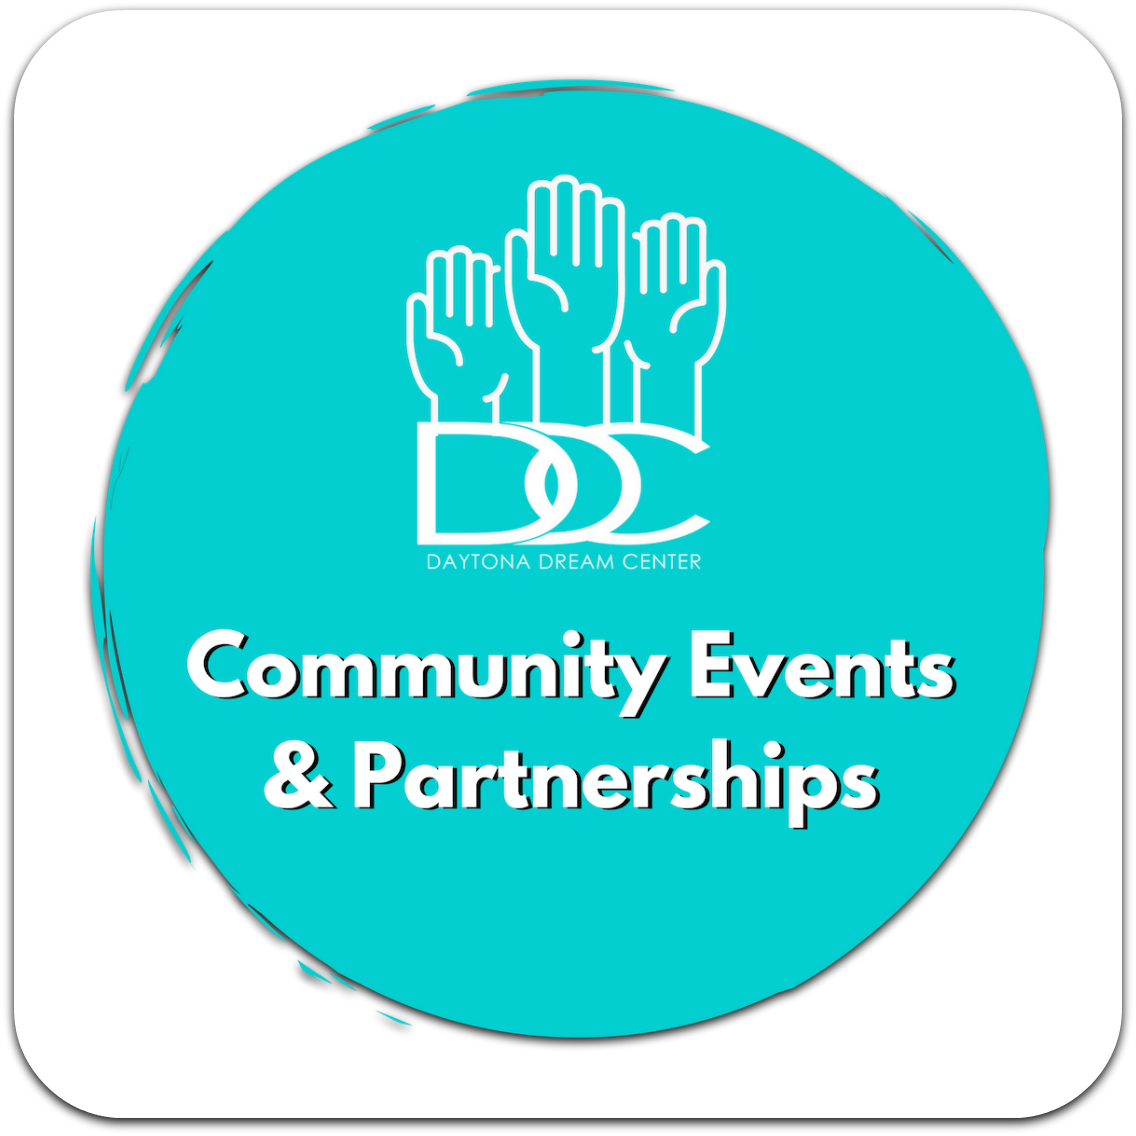 Community Events & Partnerships-2-2-2.png